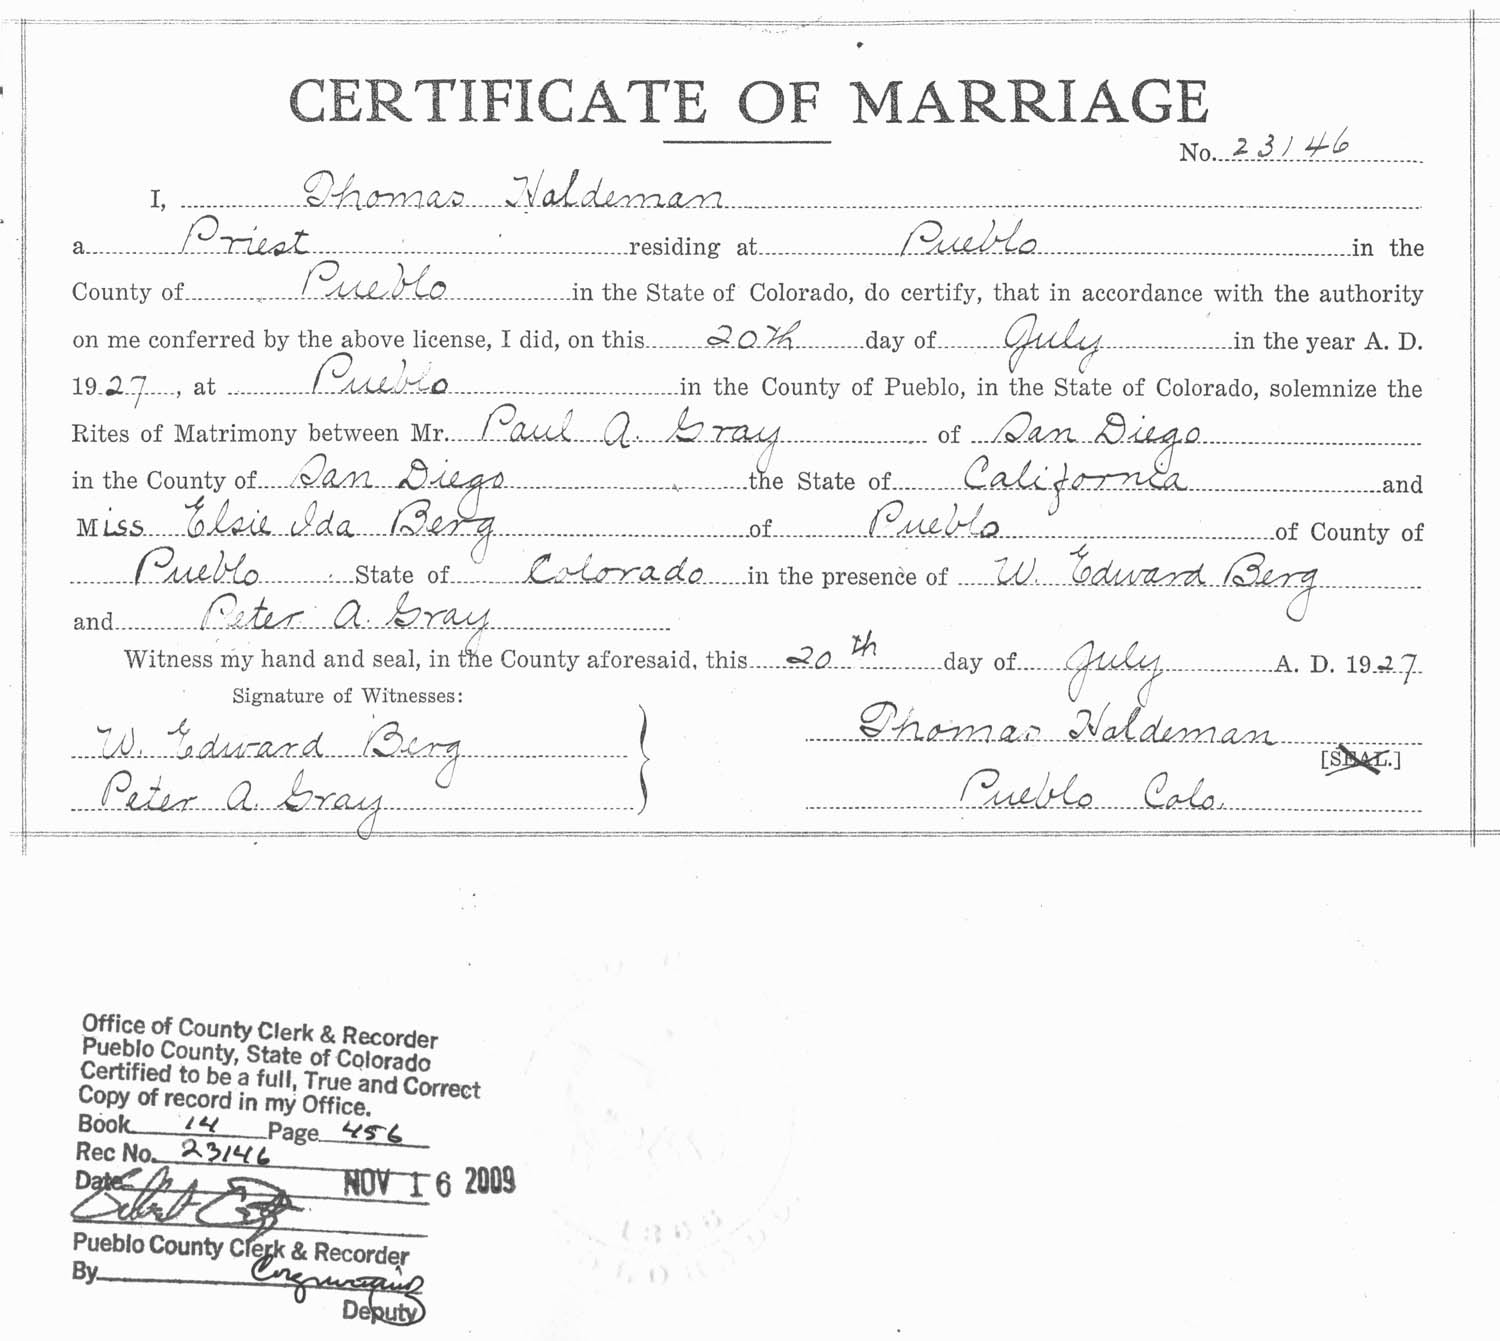 1007 lake avenue pueblo co 81004 here is a copy of the marriage certificate 1betcityfo Gallery